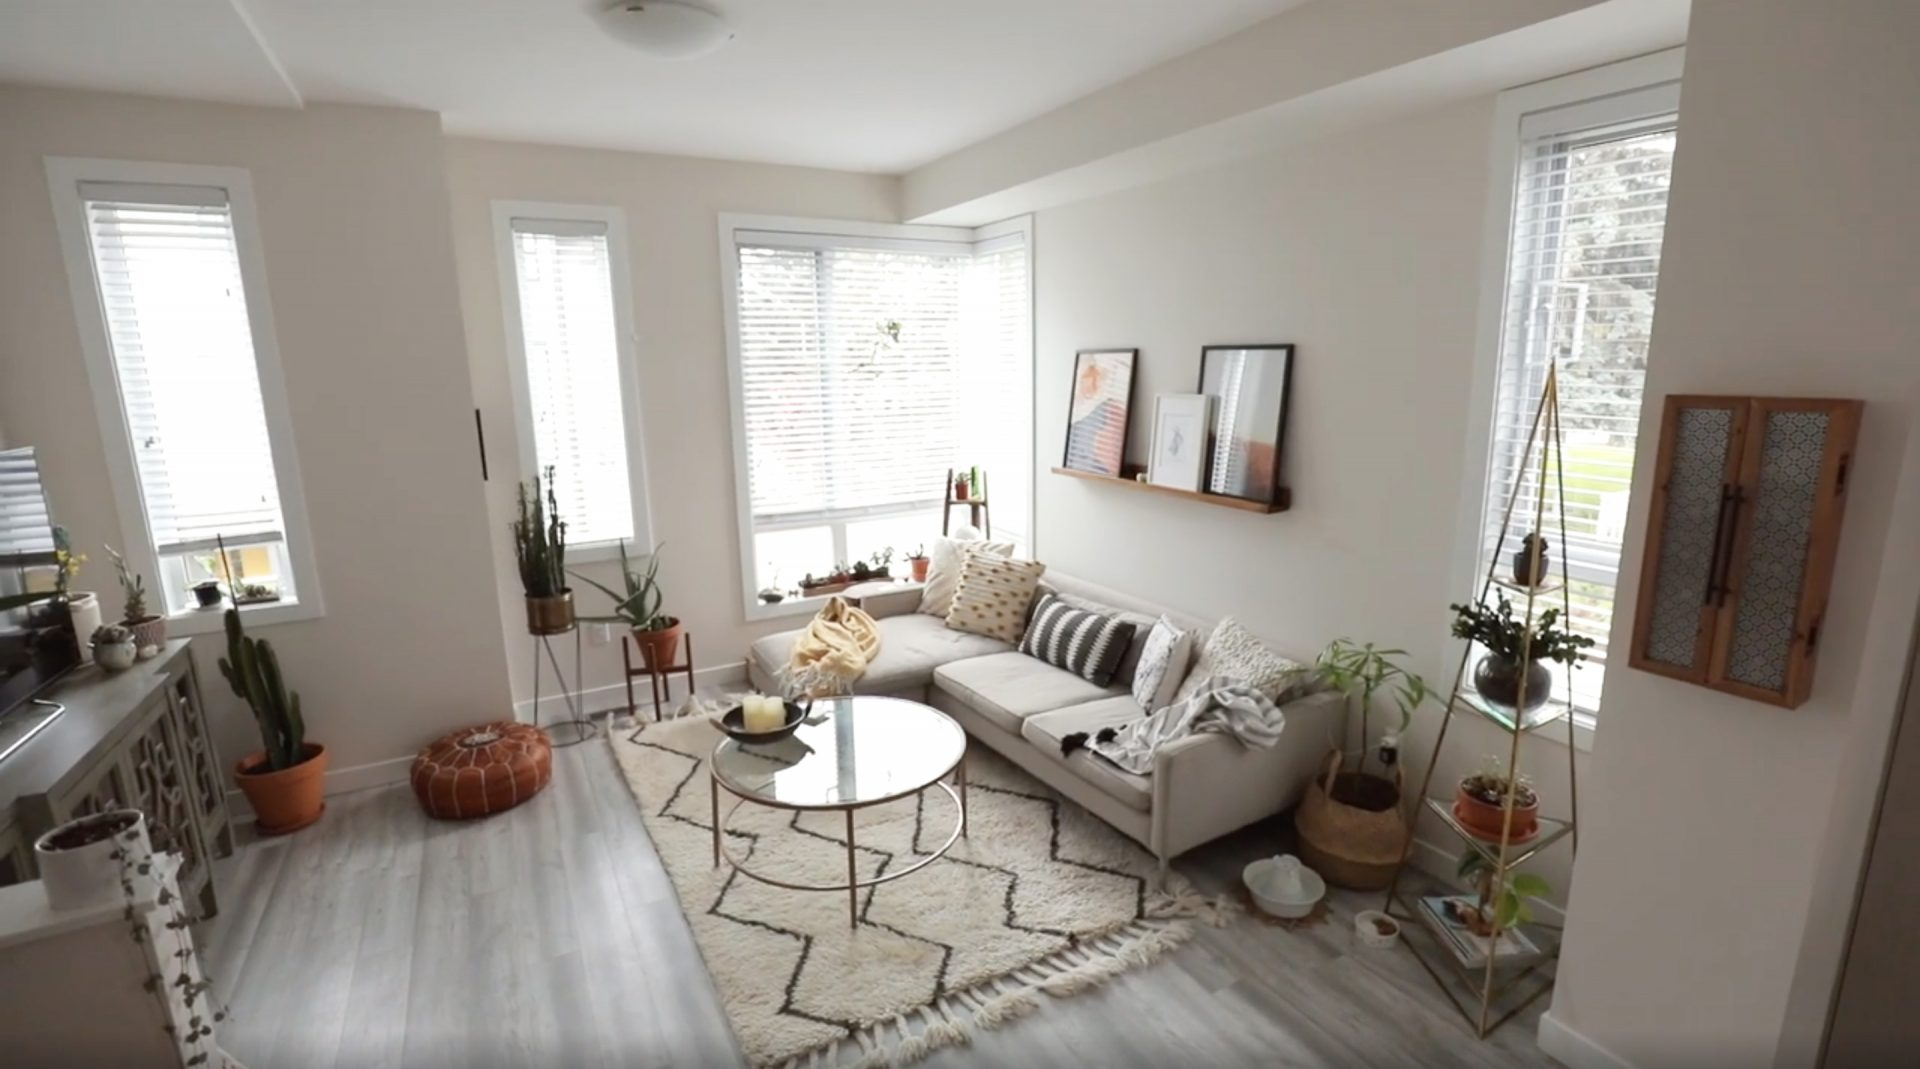 Karissa Pukas's Living Room. Large cream boho rug with a bronzed gold metal round coffee table with a glass top. A large Grey L shaped couch, floating shelf and artwork on the wall. Lots of Bright Light and Windows